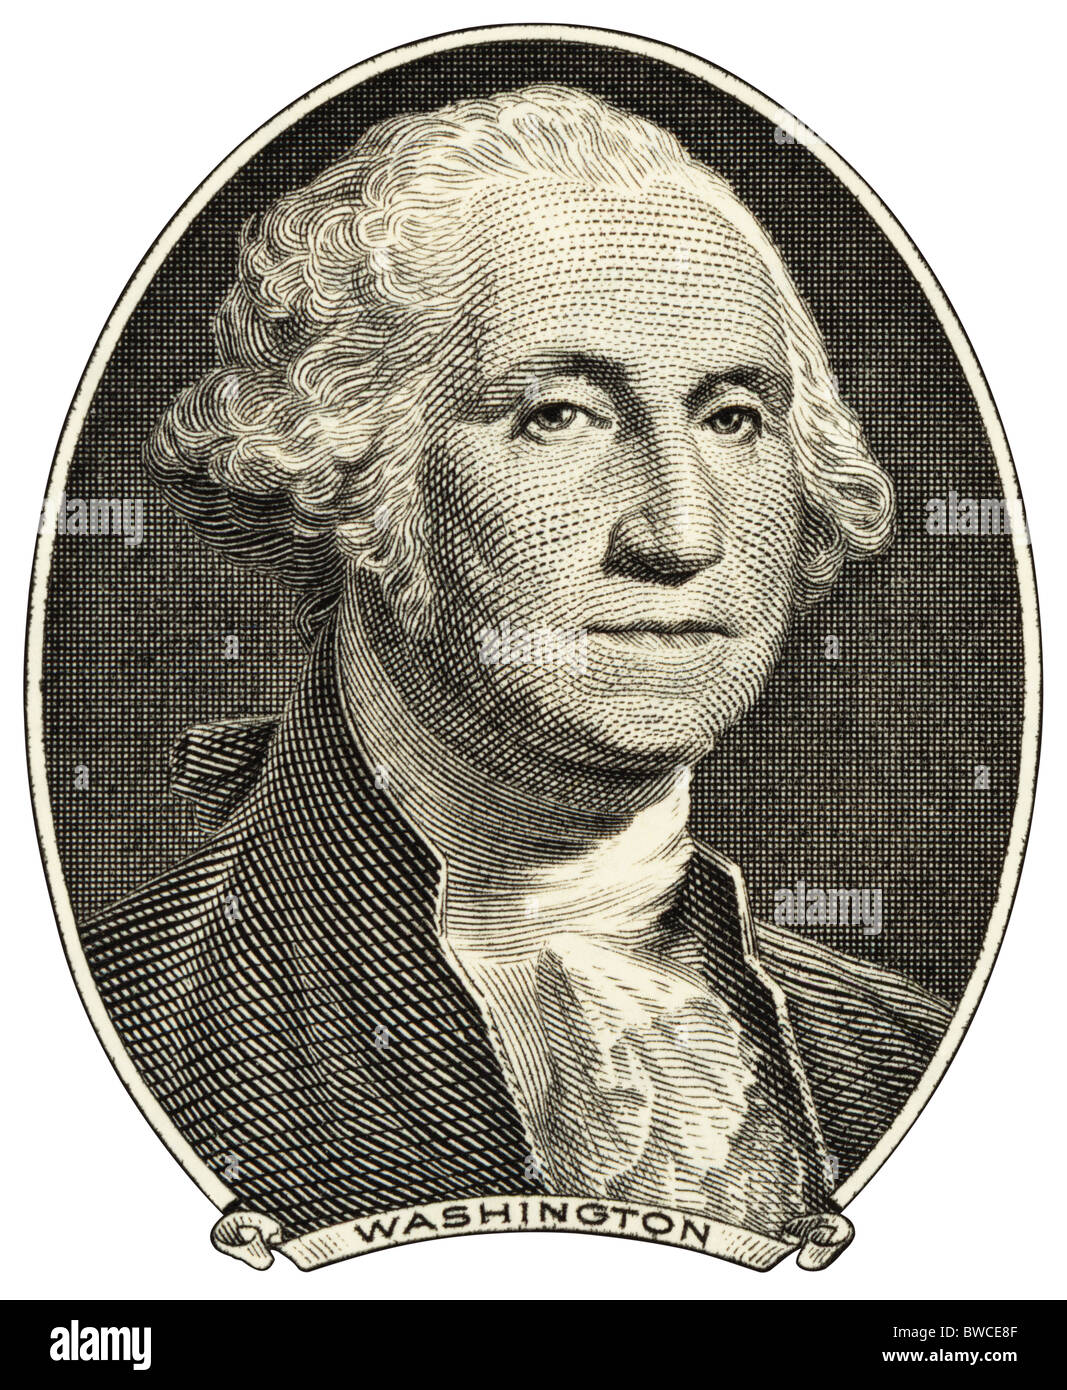 Portrait of U.S. president George Washington as he looks on one dollar bill obverse. NATIVE SIZE NOT UPSCALE - Stock Image